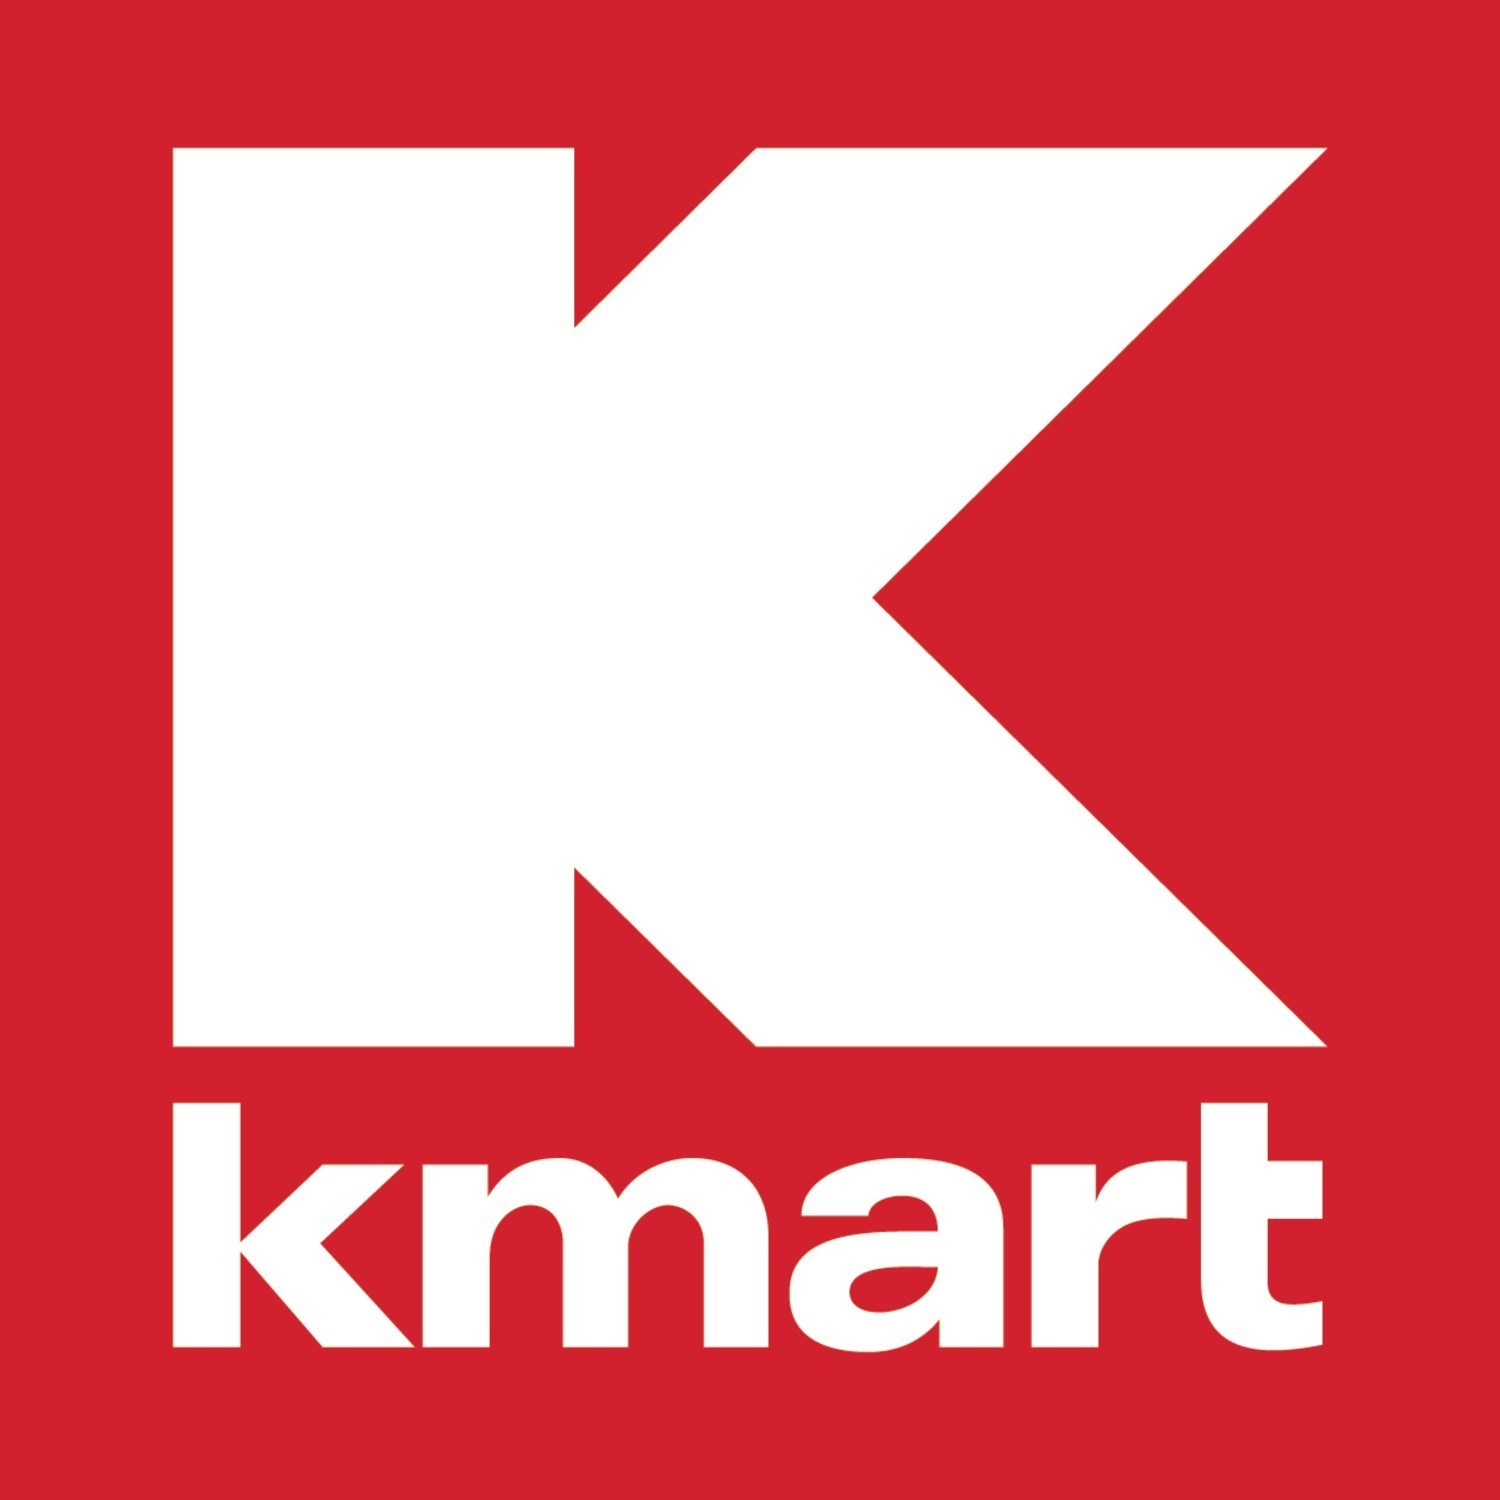 Kmart Announces Hottest Toys this Holiday Season with Annual